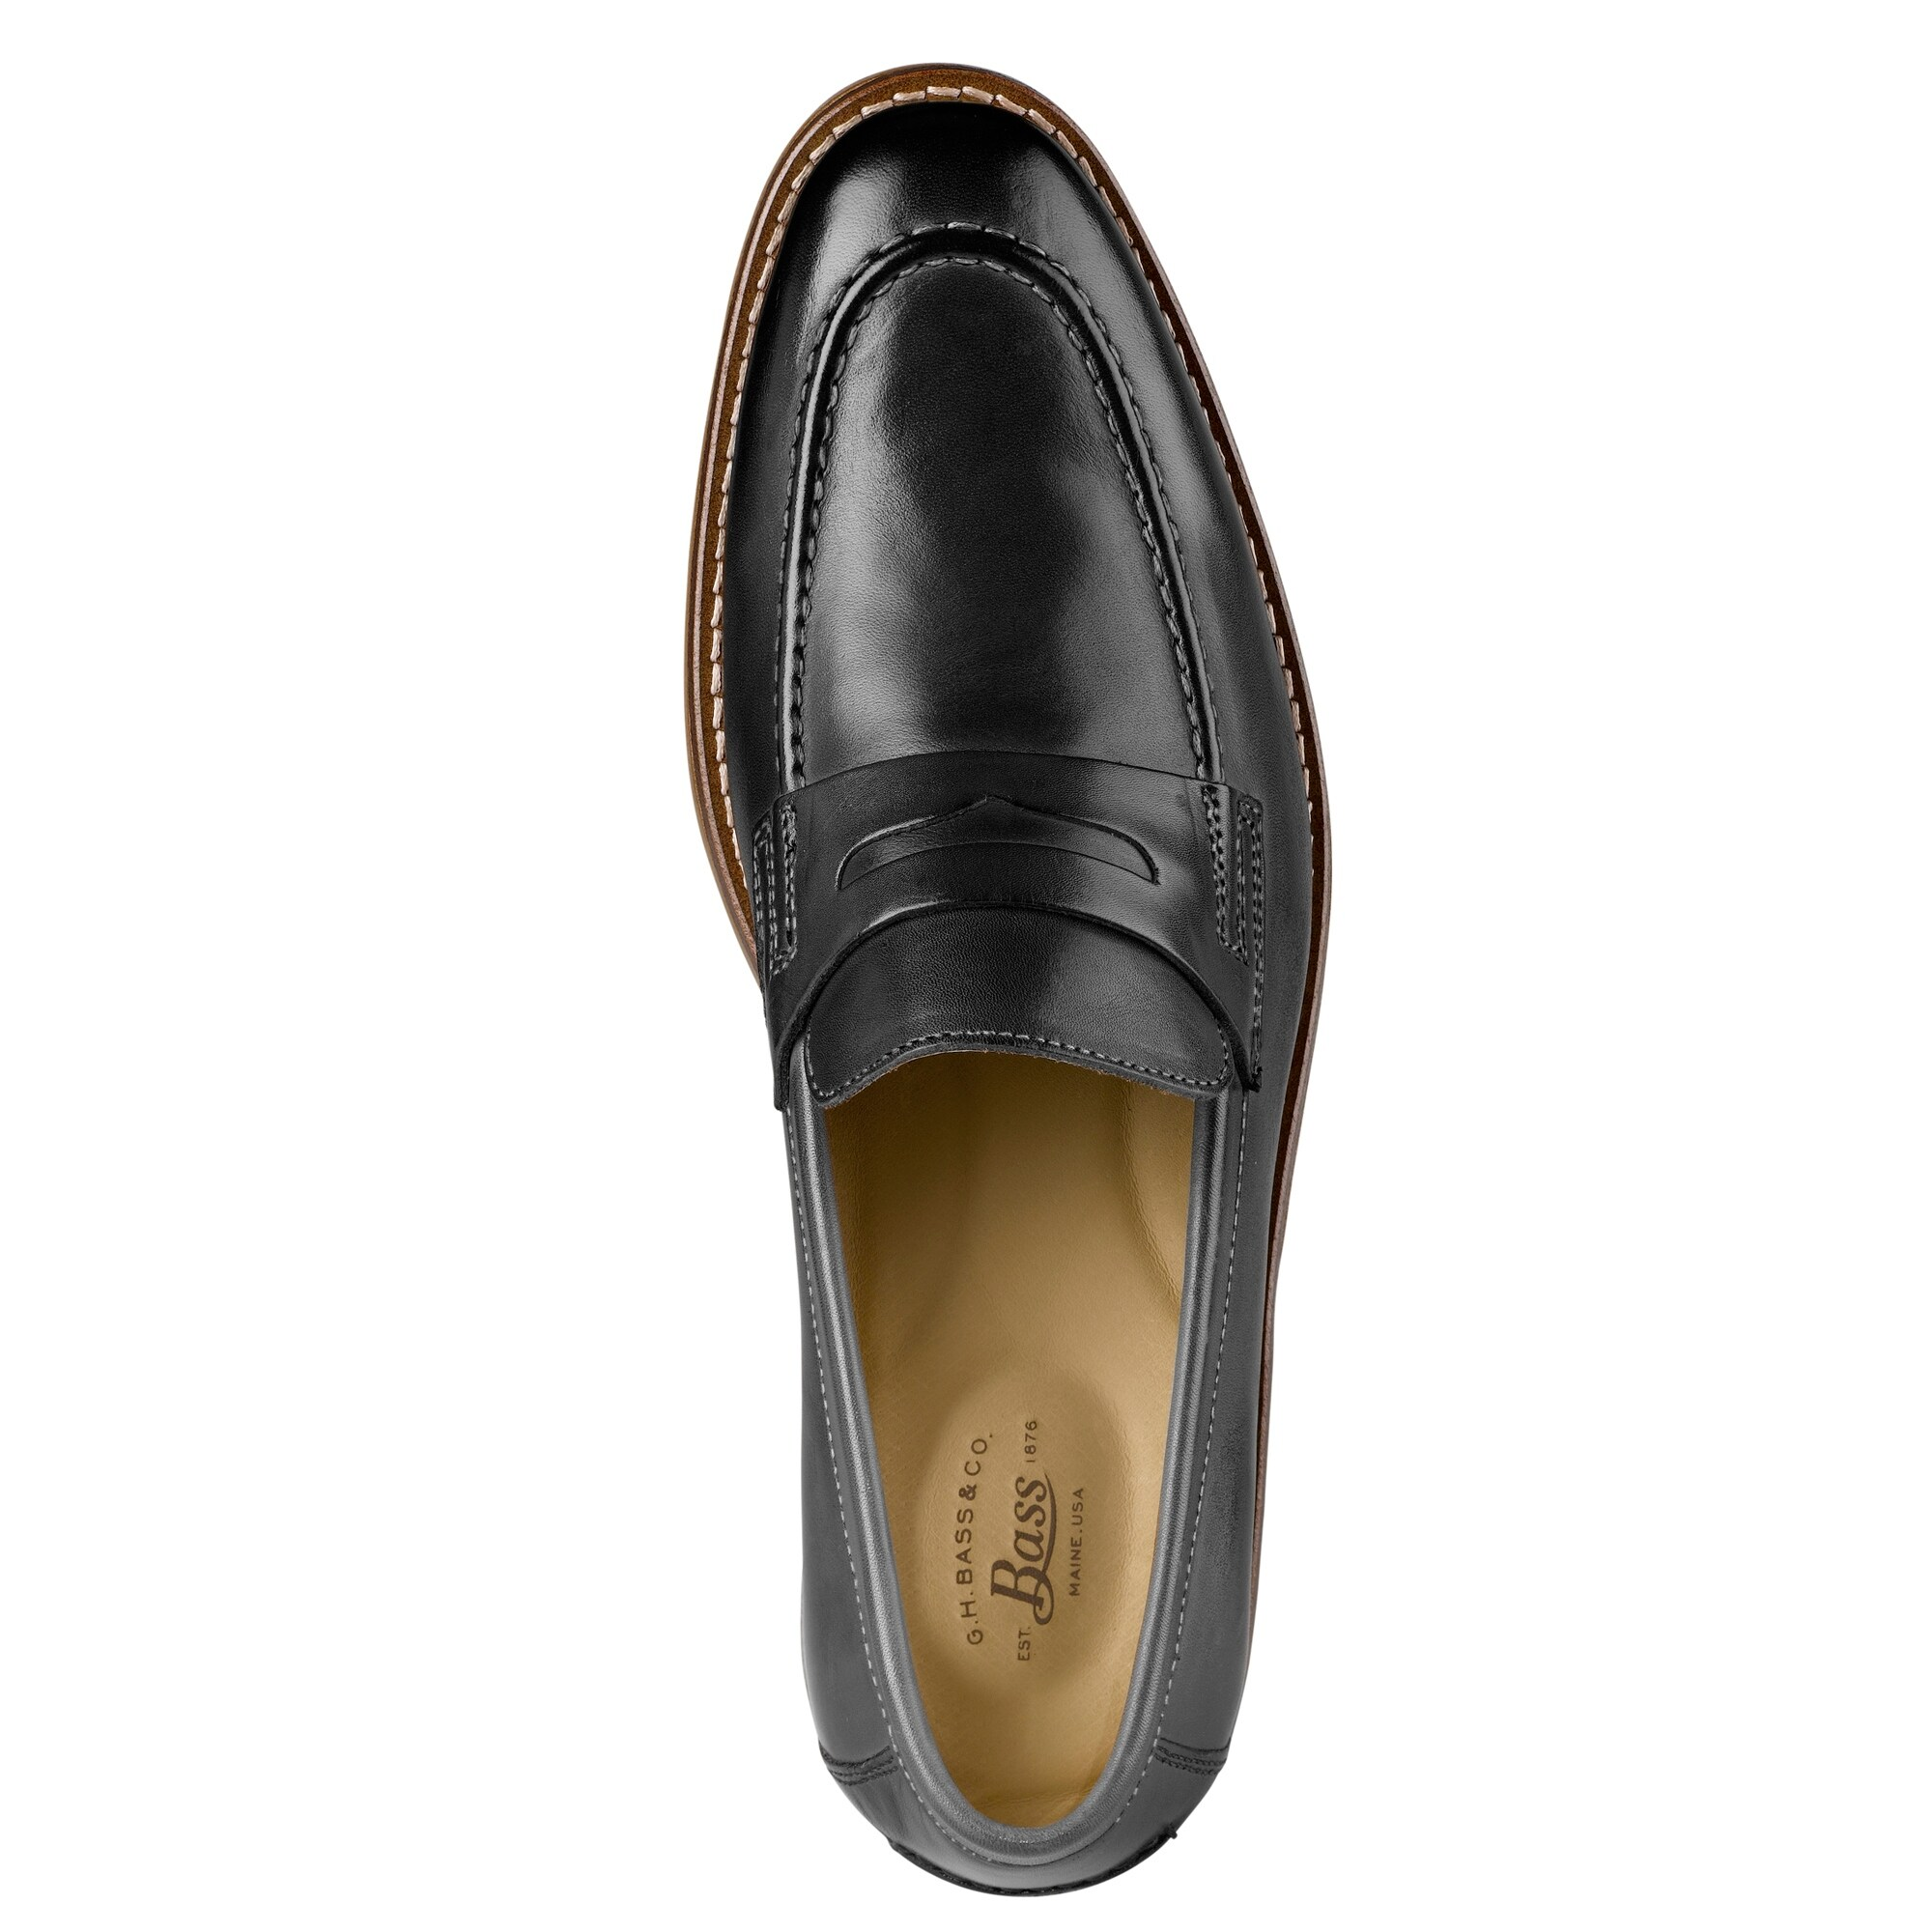 370119574db Mens Conner Leather Penny Loafer Shoe - On Sale - Free Shipping Today -  Overstock - 22538568